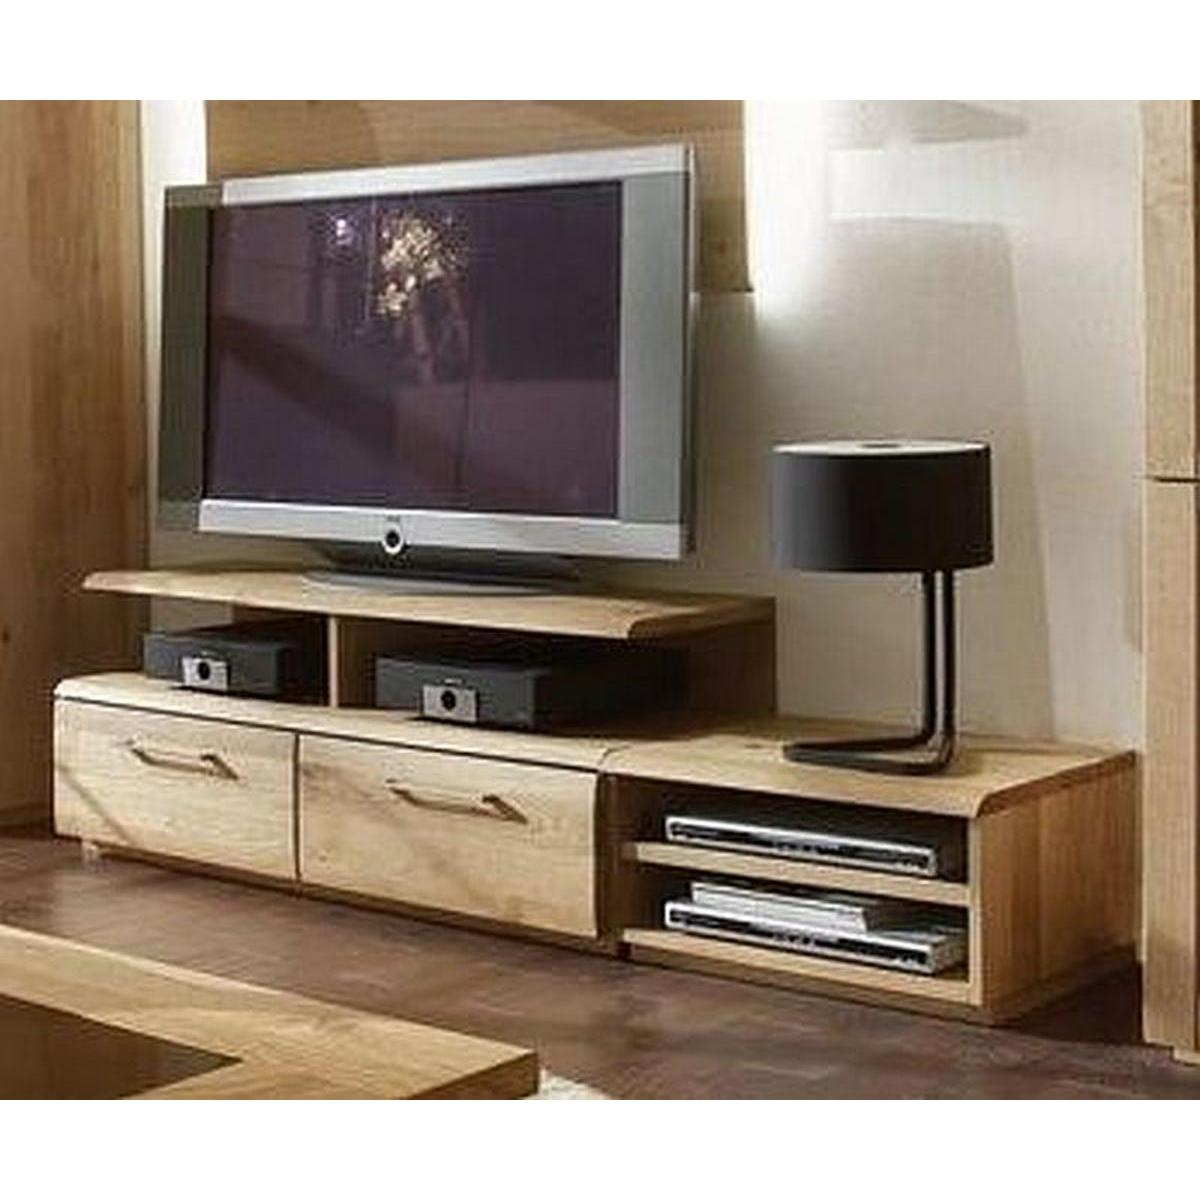 tv lowboard design inspirierendes design. Black Bedroom Furniture Sets. Home Design Ideas